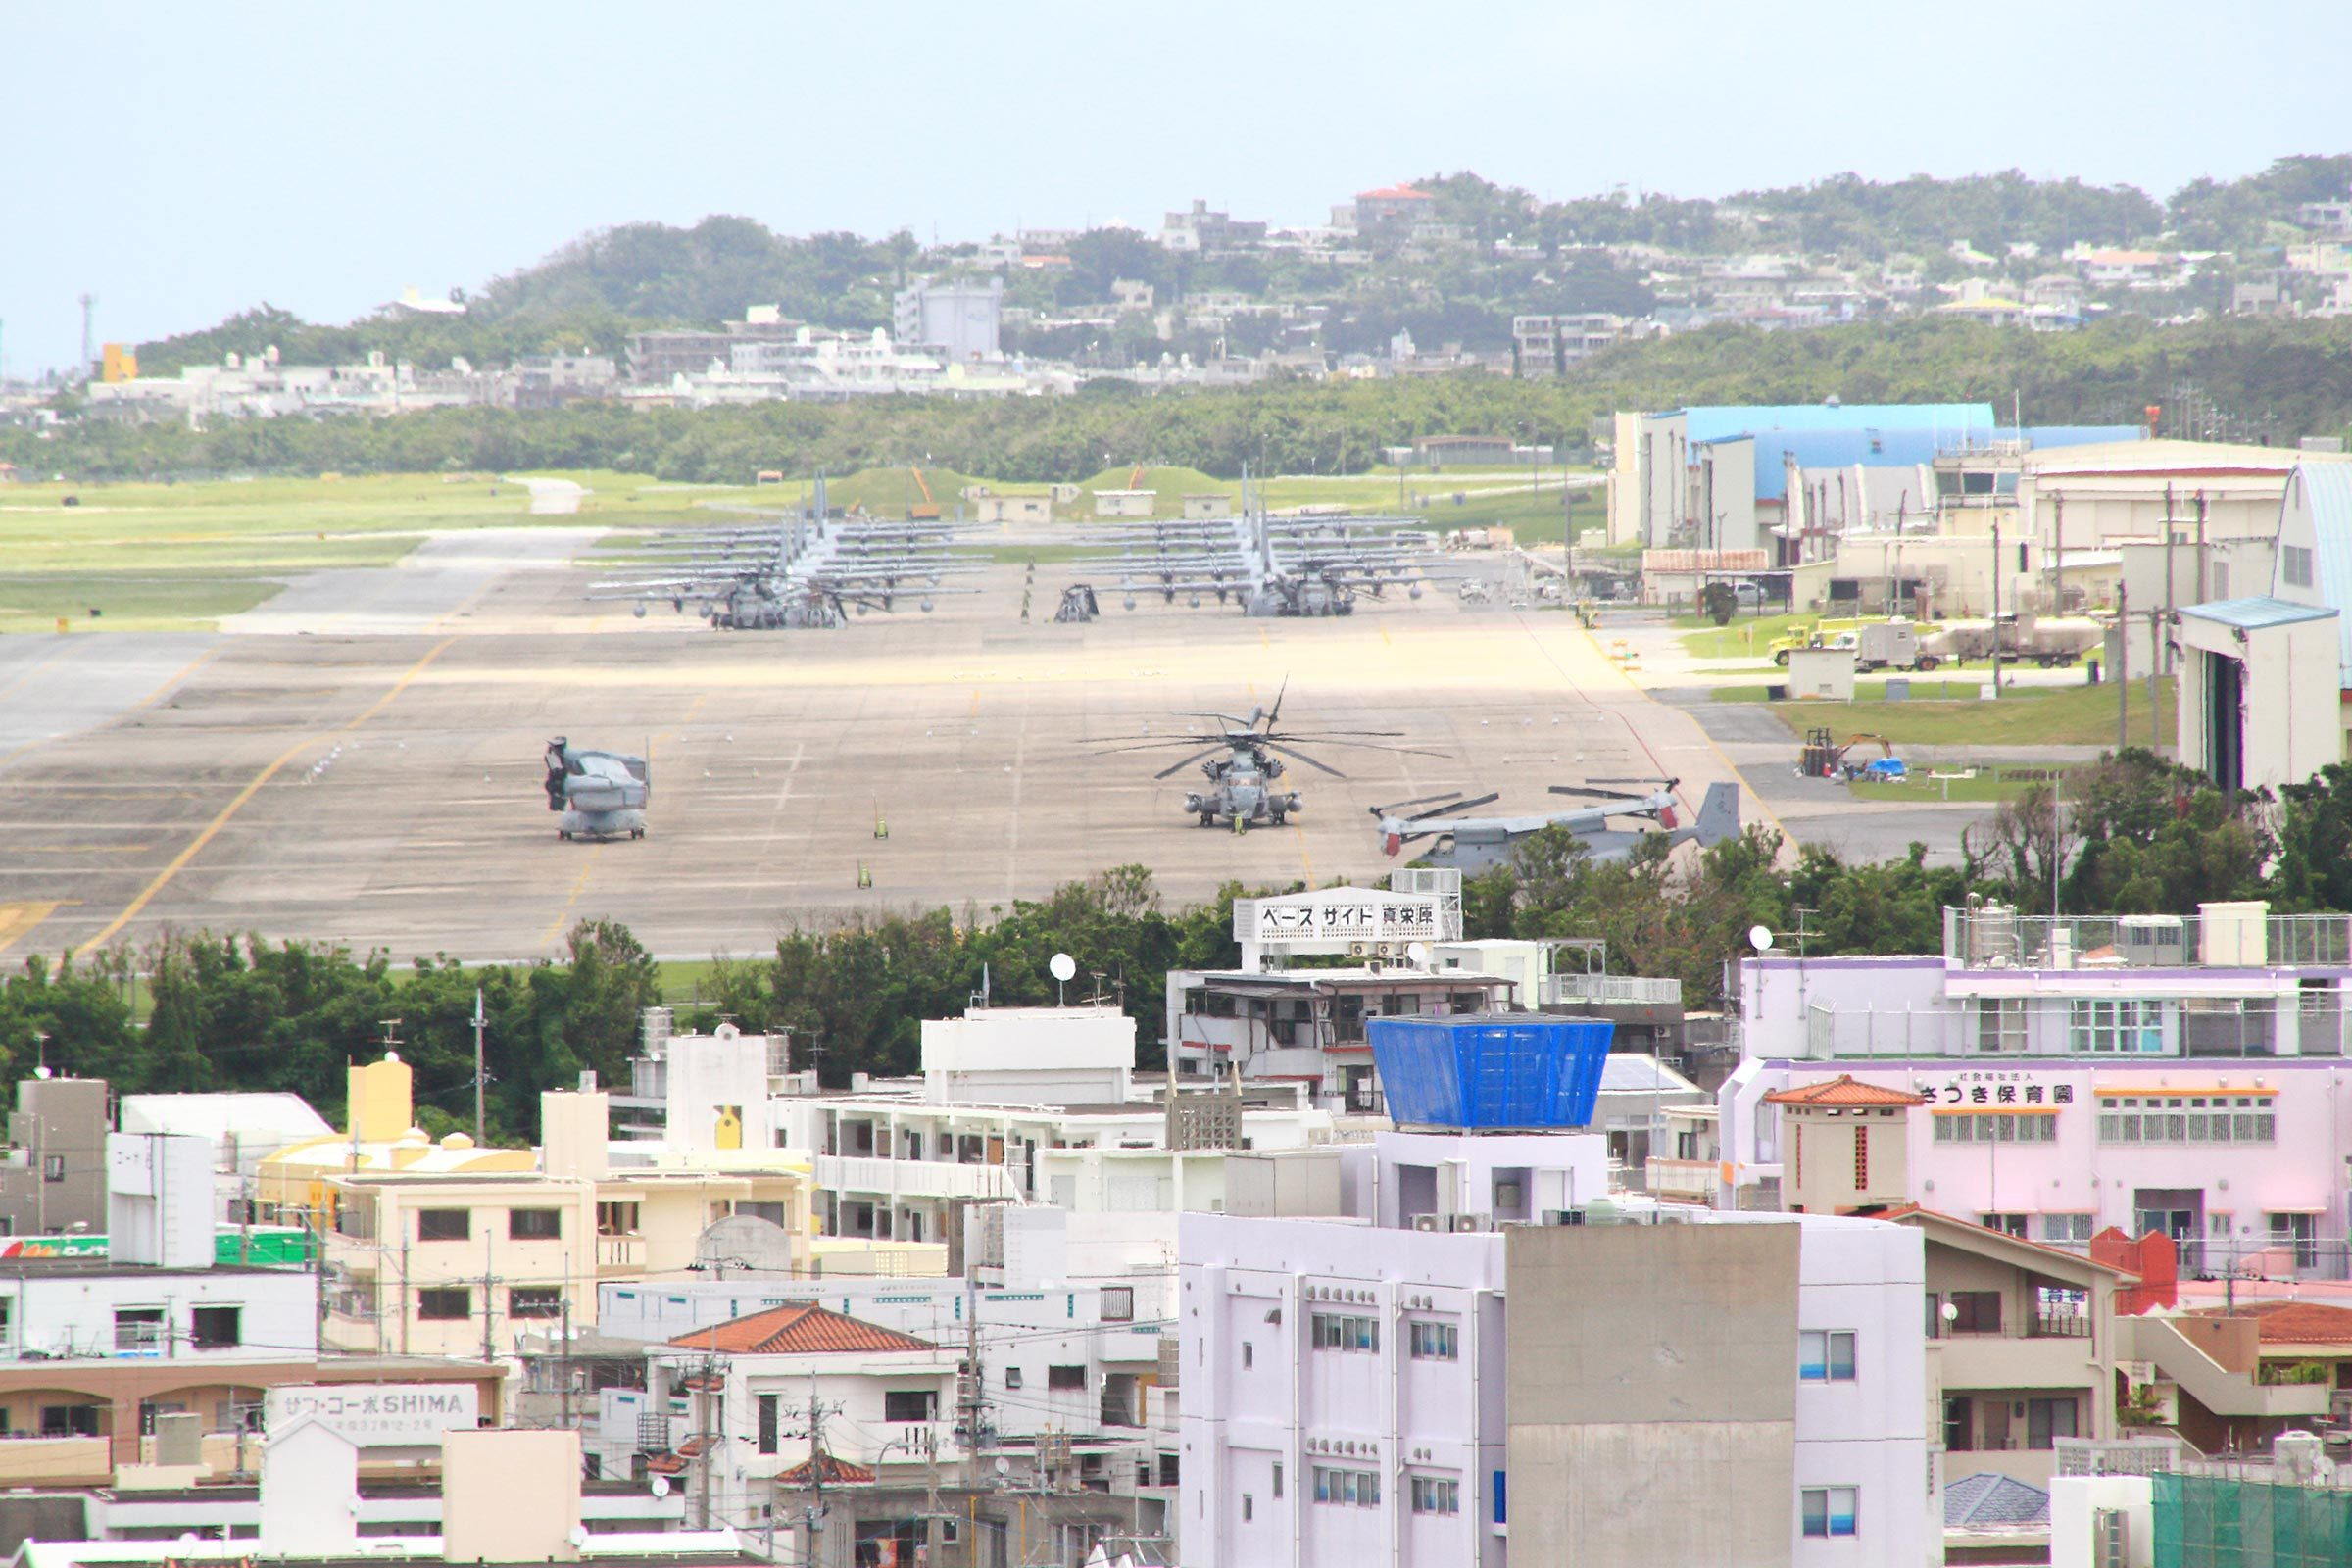 Marine Corps Air Station Futenma or MCAS Futenma is a United States Marine Corps base located in Ginowan, Okinawa, Japan - 23 Jul 2013